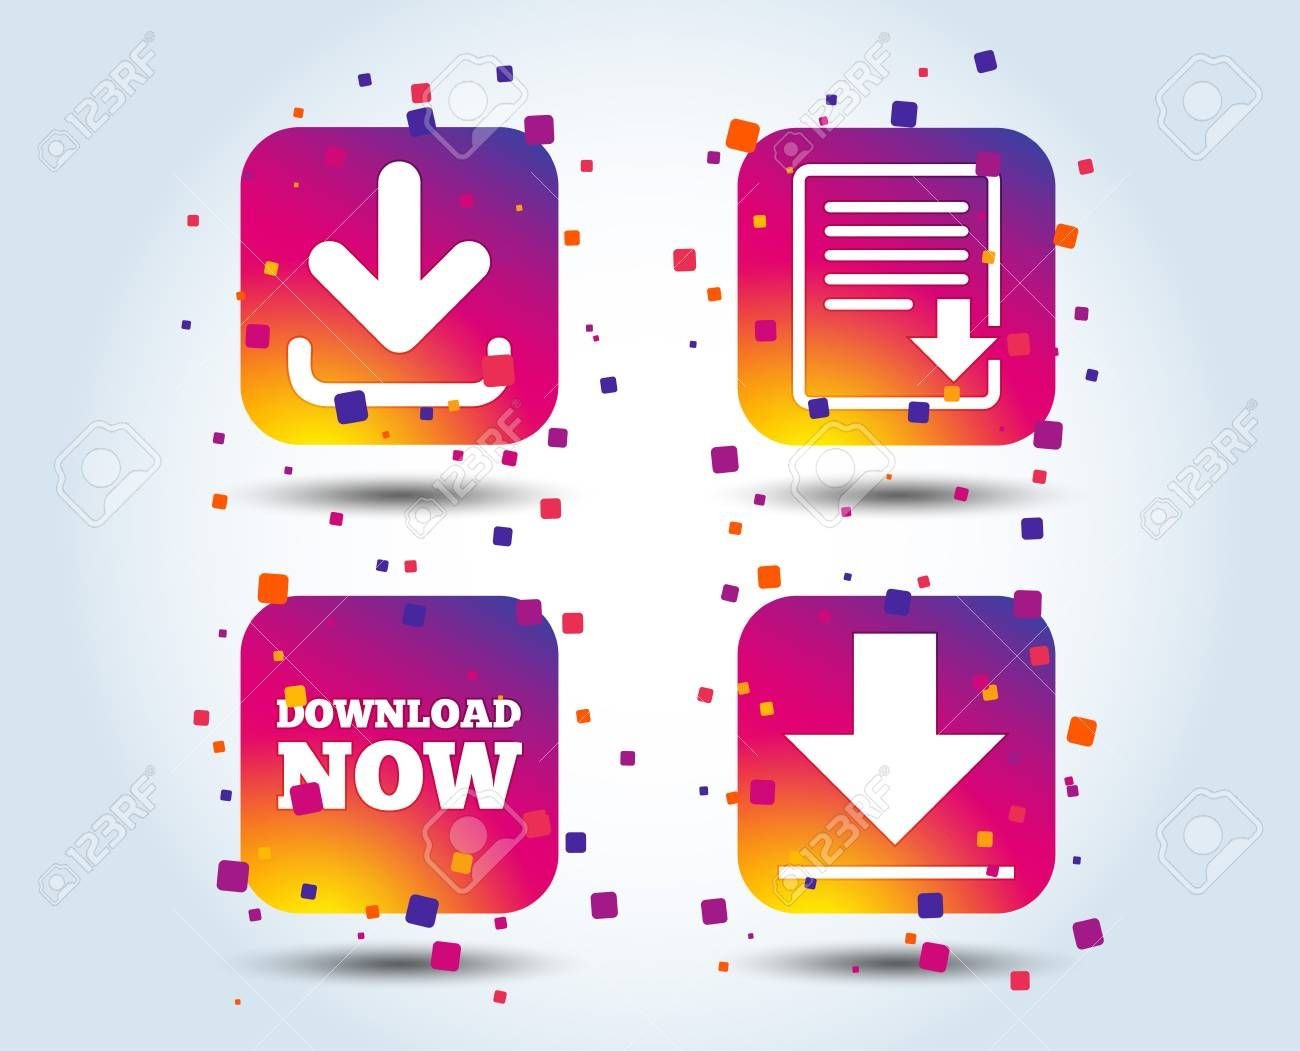 Download Now Icon Upload File Document Symbol Receive Data From A Remote Storage Signs Colour Gradient Square Buttons Flat D Concept Design Symbols Concept